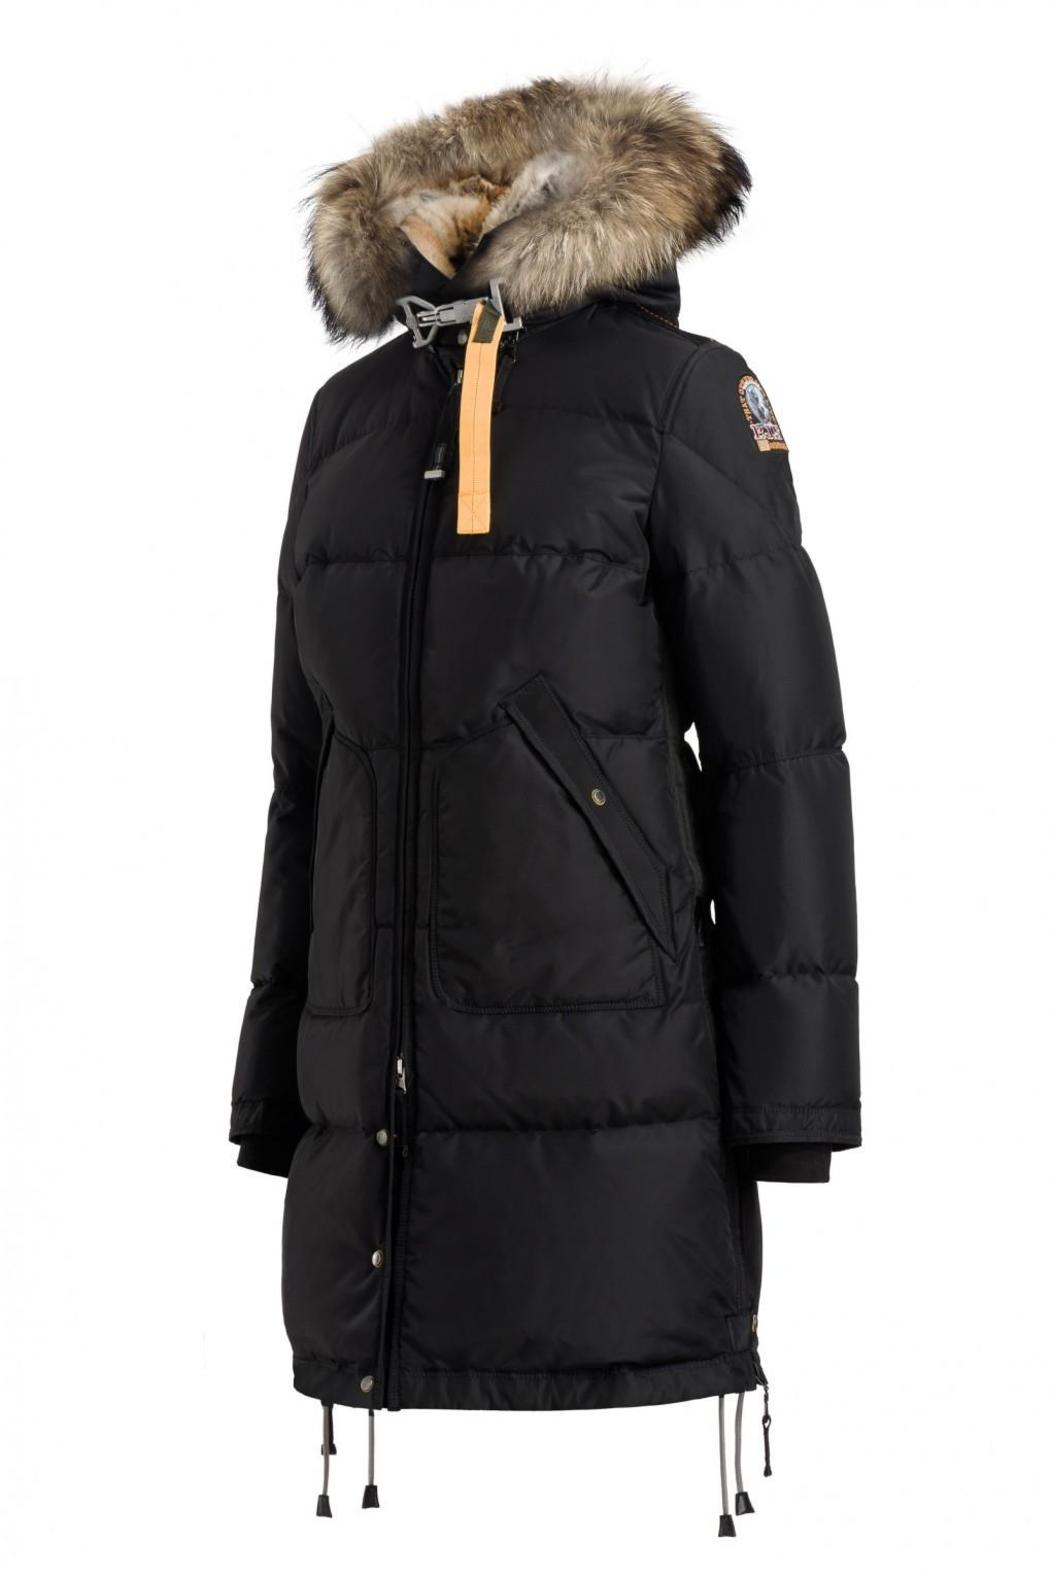 parajumpers long bear coat black